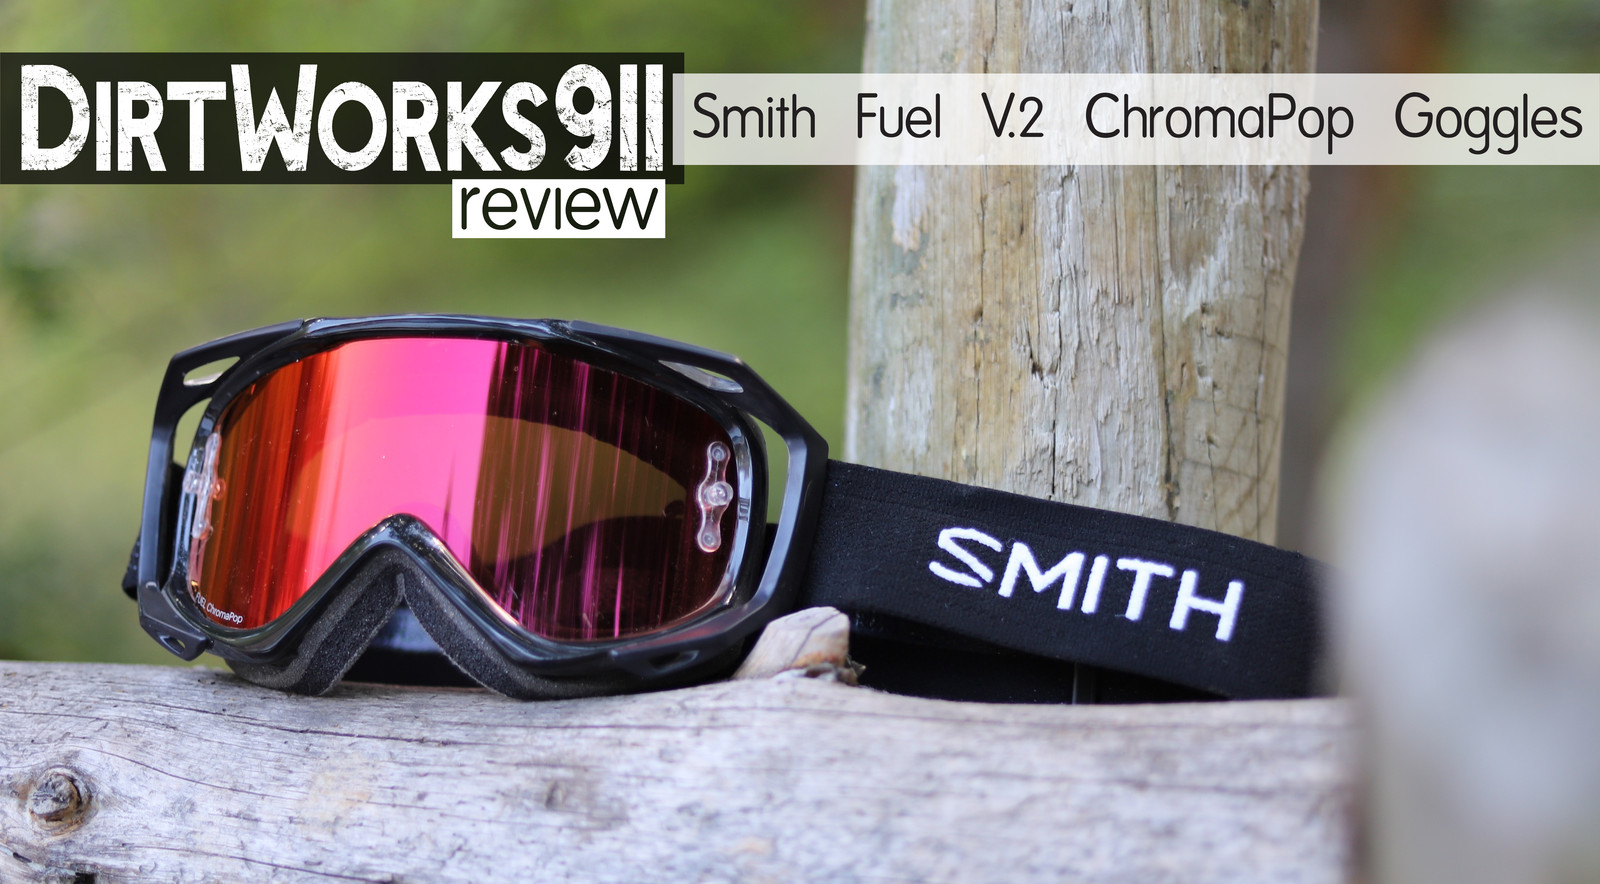 Smith Fuel V.2 ChromaPop Goggles